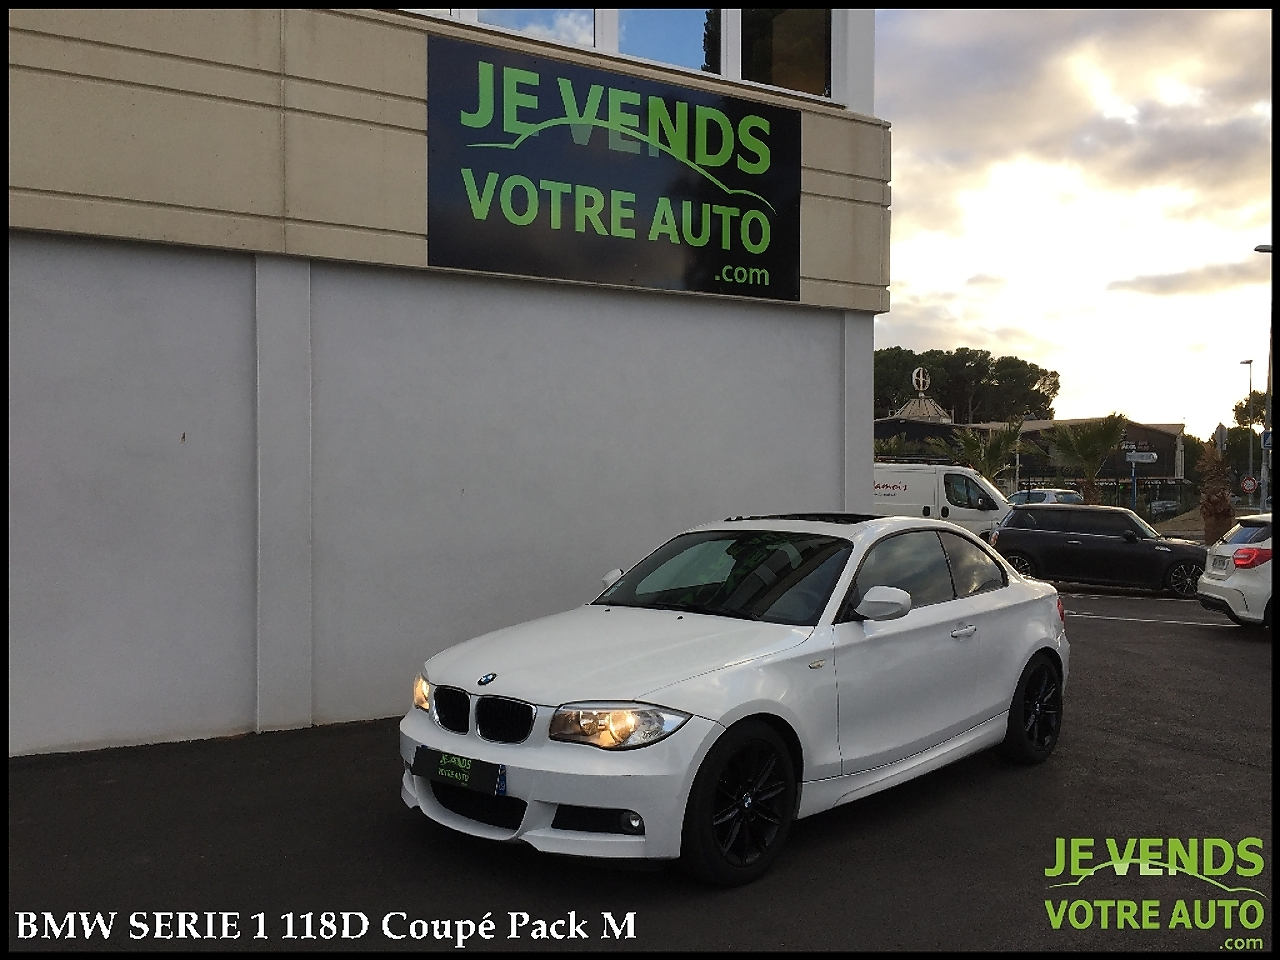 voiture bmw s rie 1 118d 143ch coupe pack m occasion diesel 2011 87800 km 14990. Black Bedroom Furniture Sets. Home Design Ideas